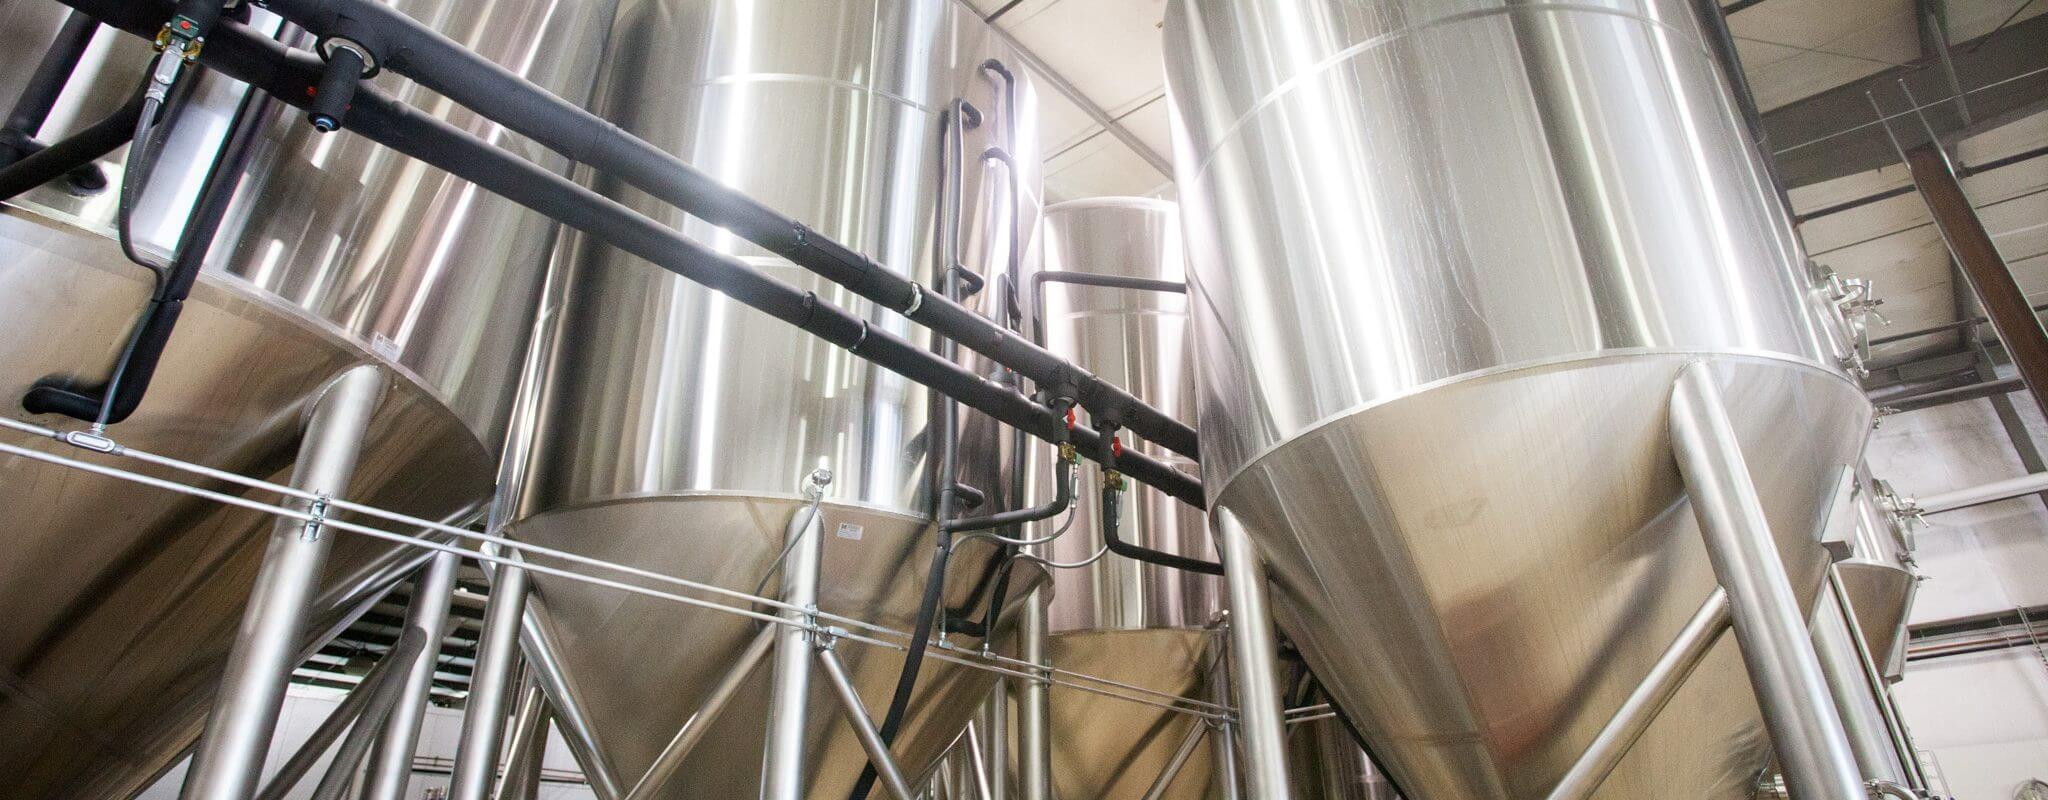 Brewing Bend, Oregon beer in brewery